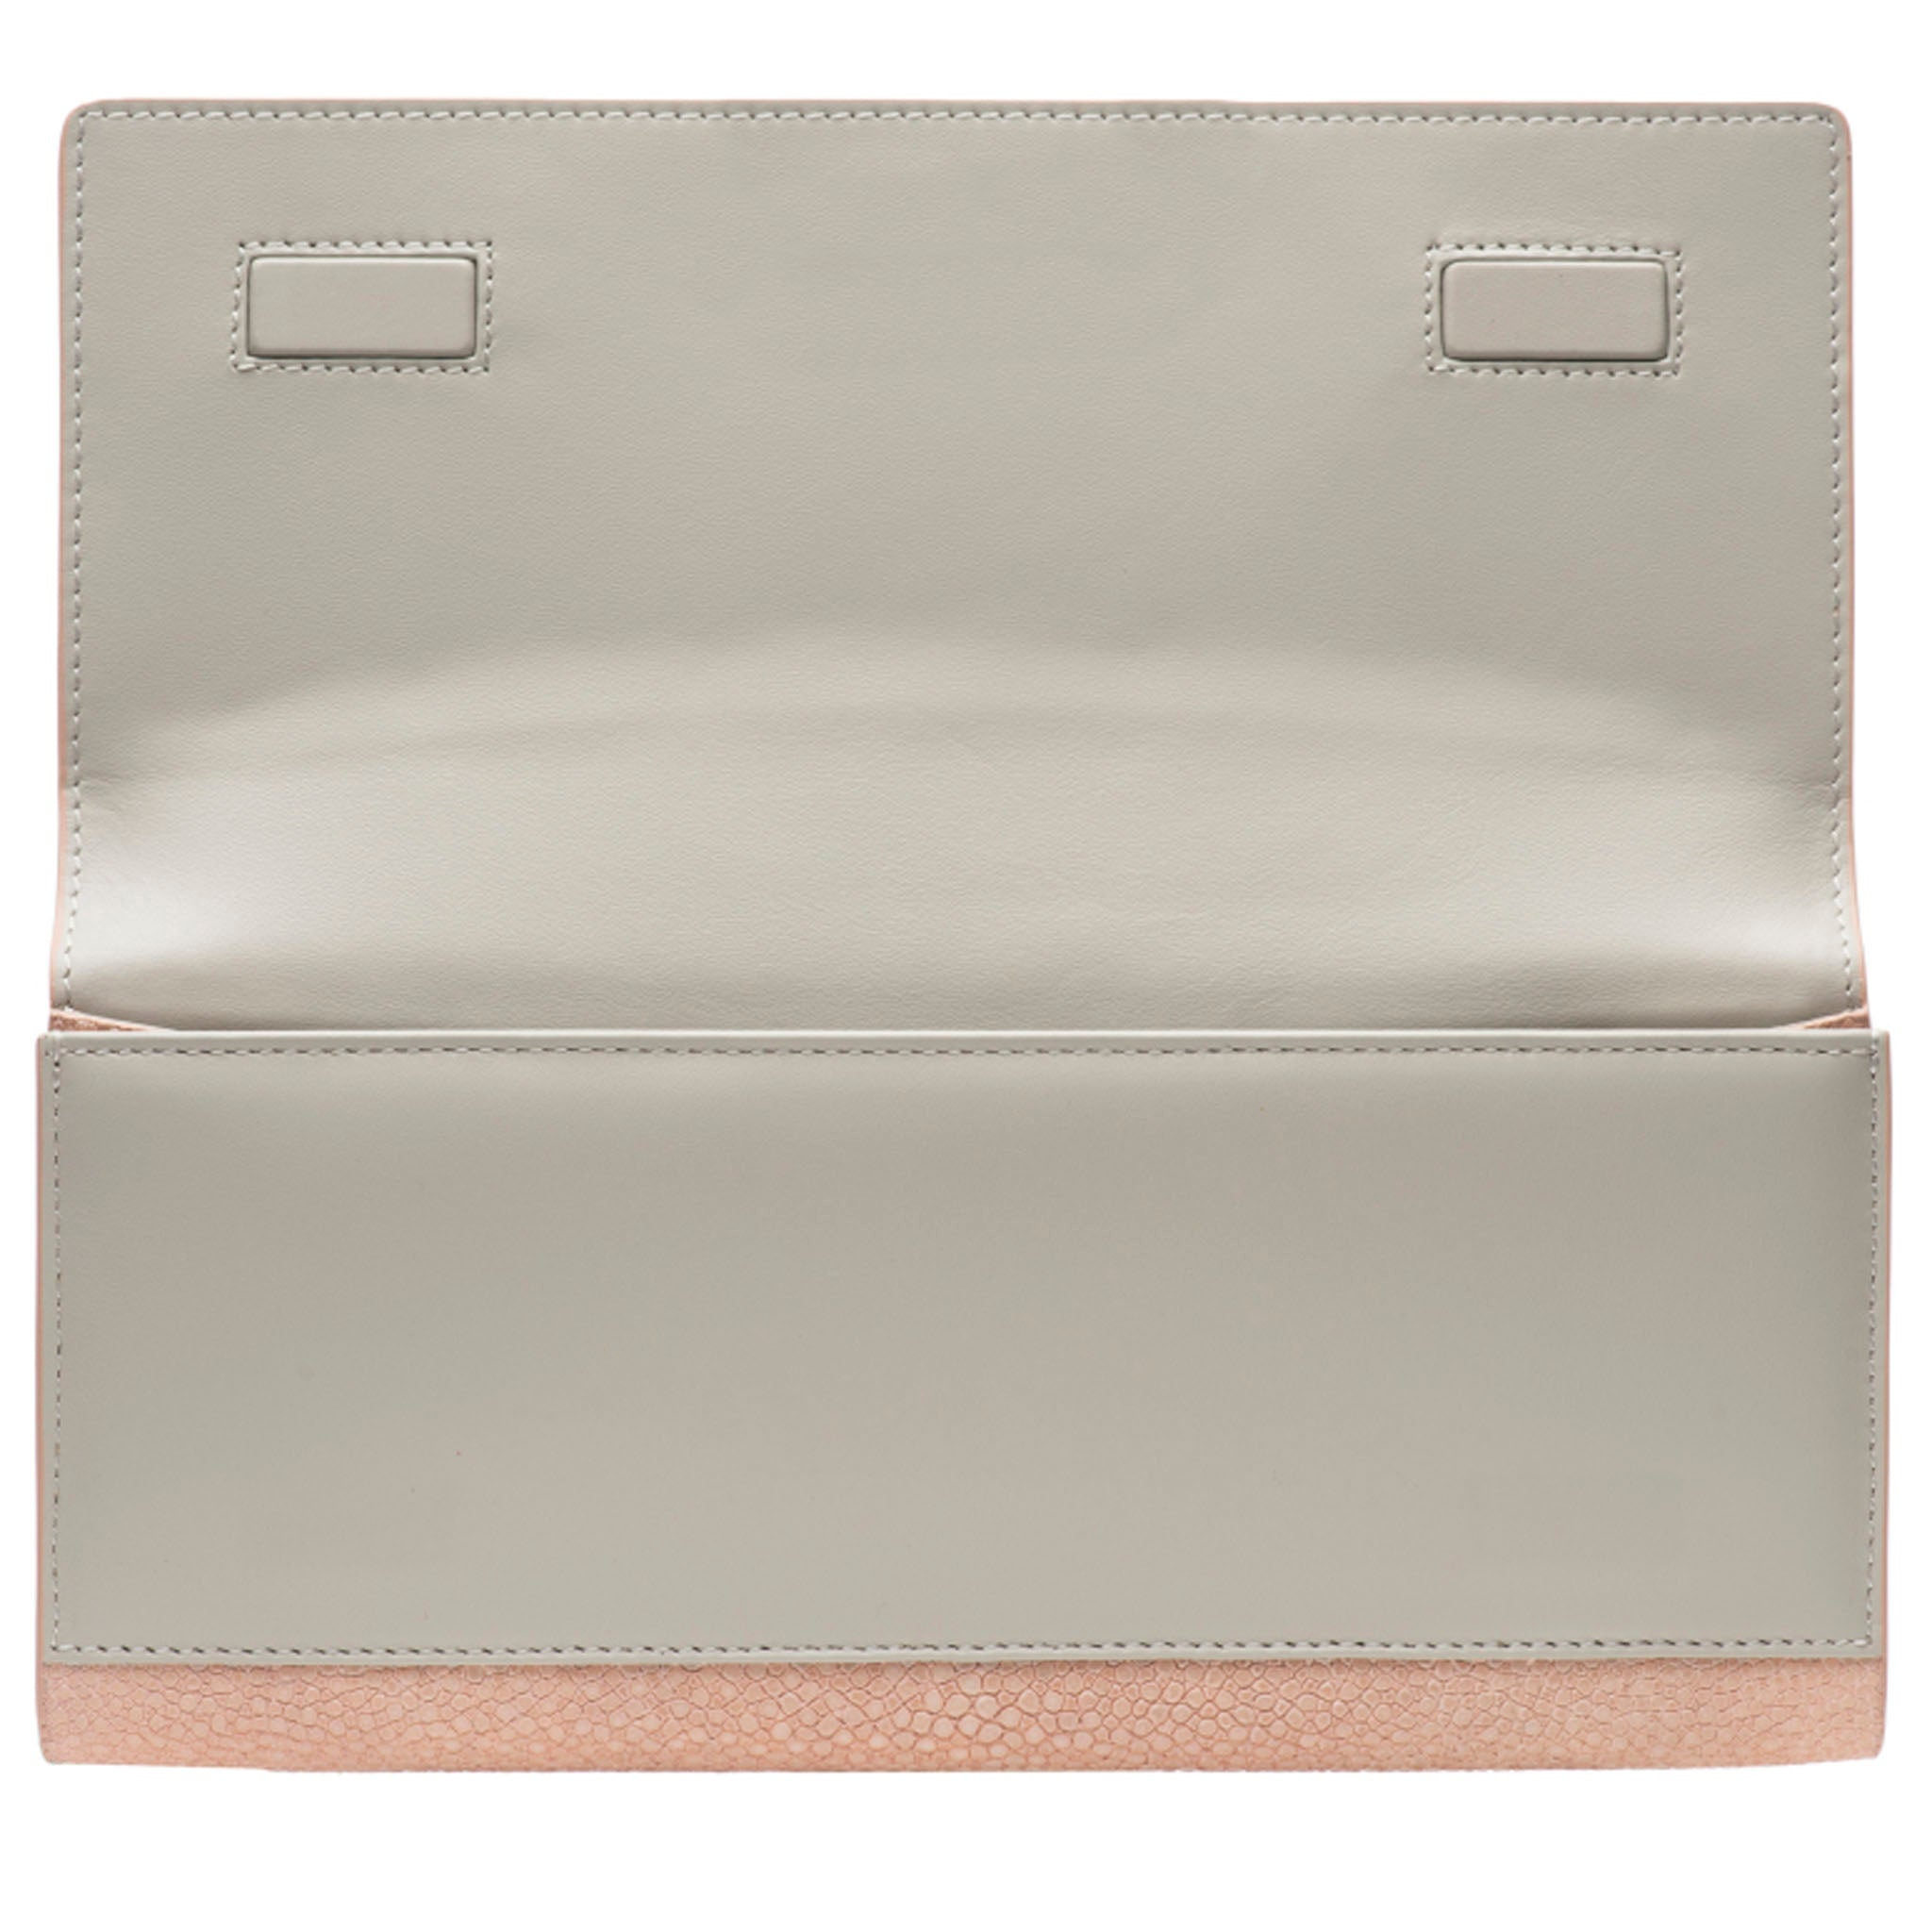 Blush Shagreen Clutch Bag Inside View Cleo - Vivo Direct